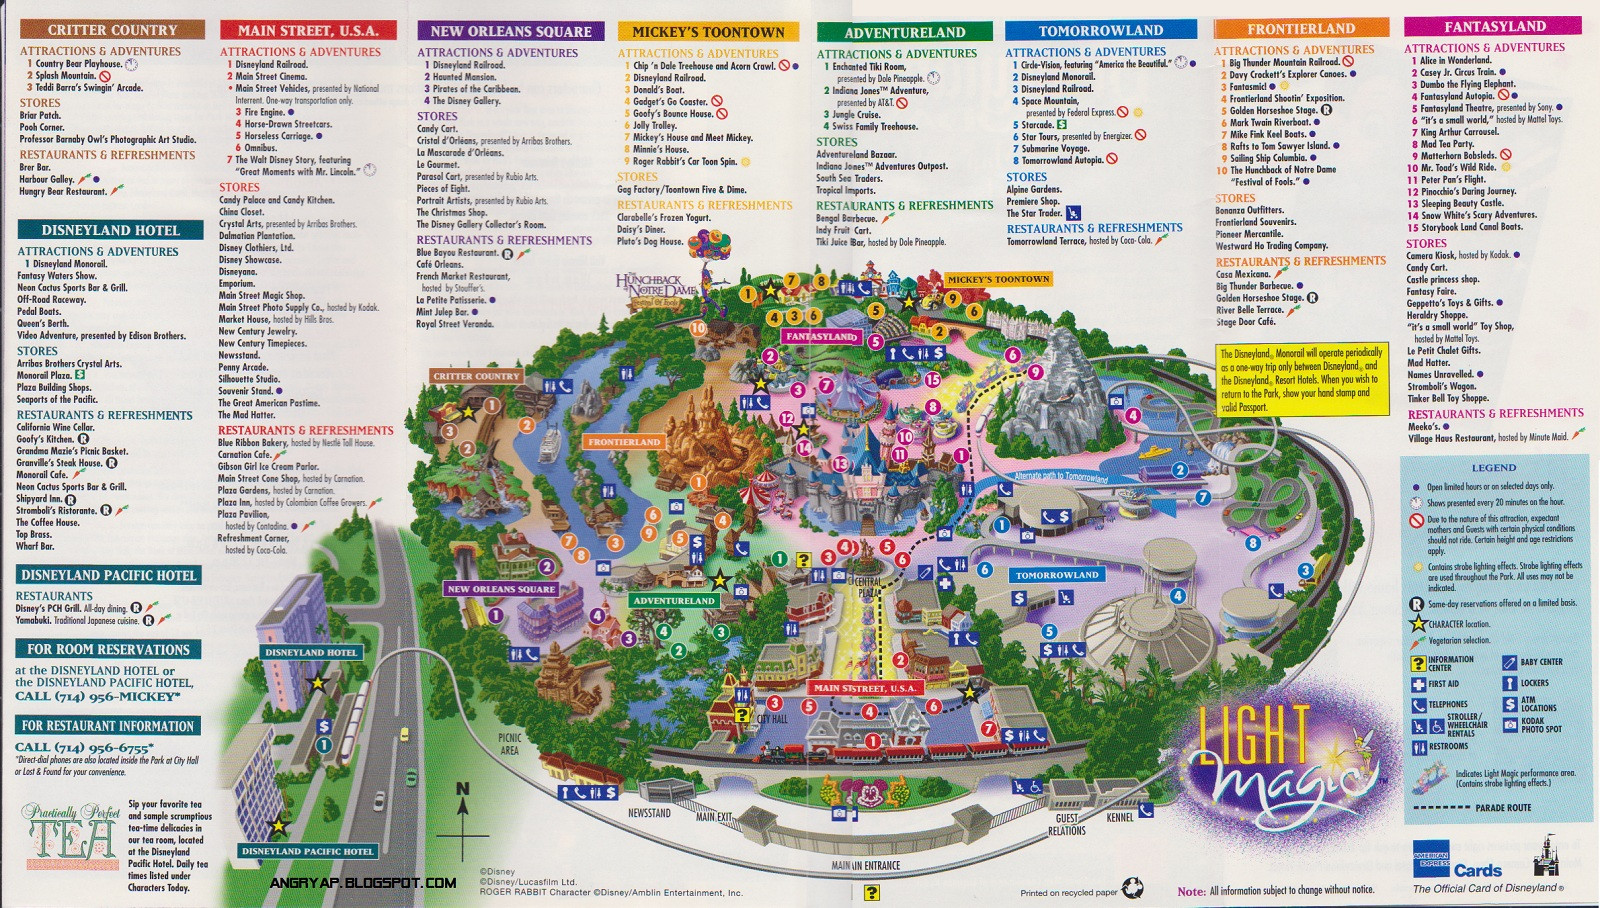 Printable Disney Map 2018 Lovely Orlando Florida Area Maps At Walt Disney World Printable